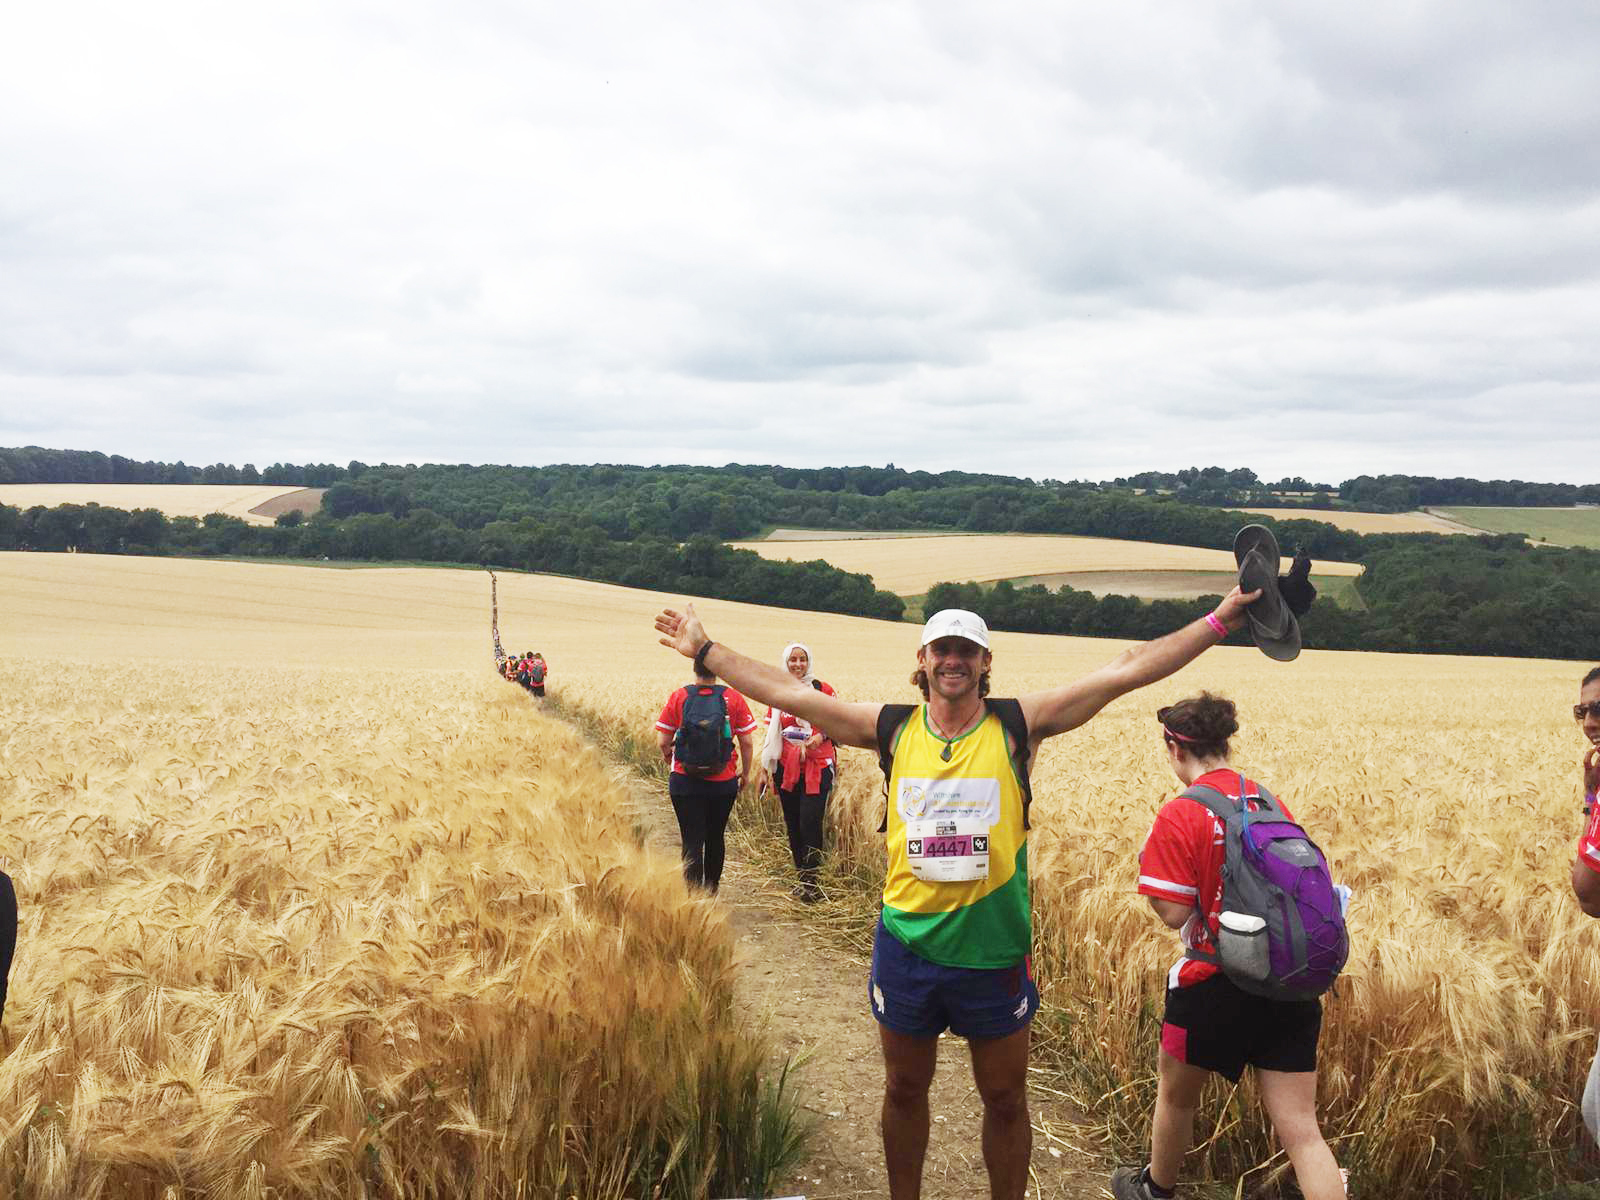 Race to the Stones along historic Ridgeway trail to support Wiltshire Air Ambulance